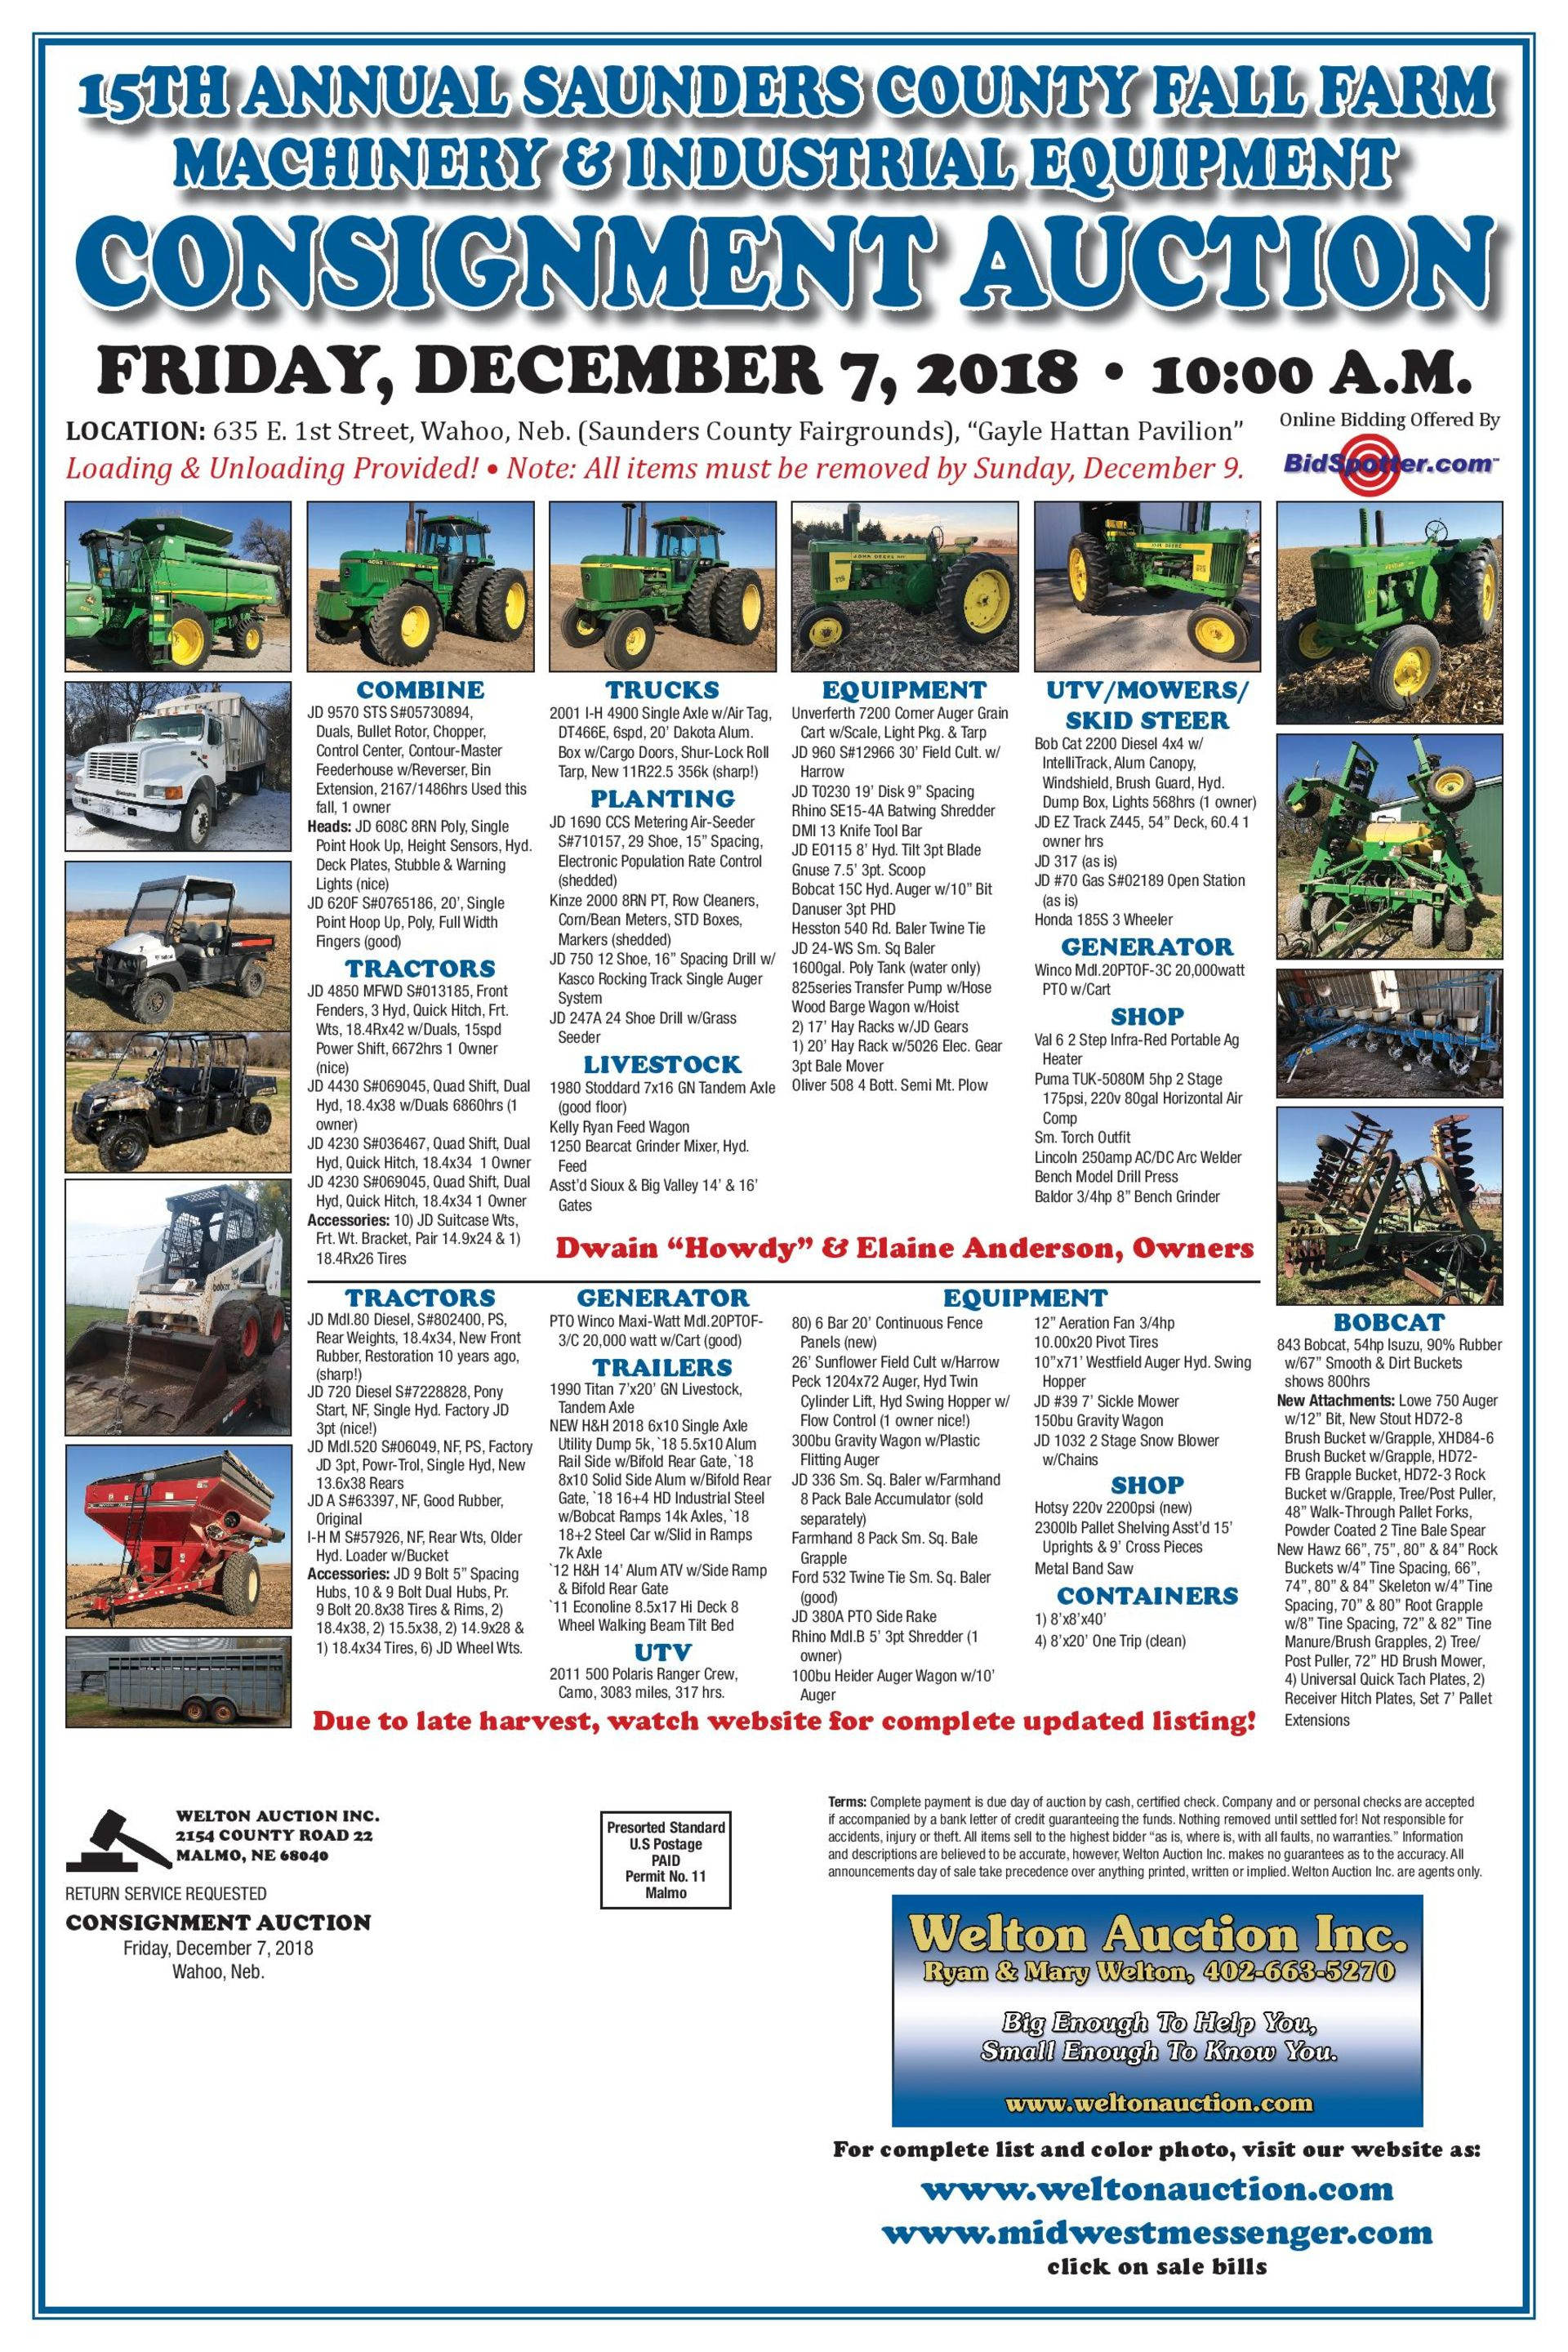 Lot 0 - Register Now! 15th Annual Farm Equipment Consignment Auction